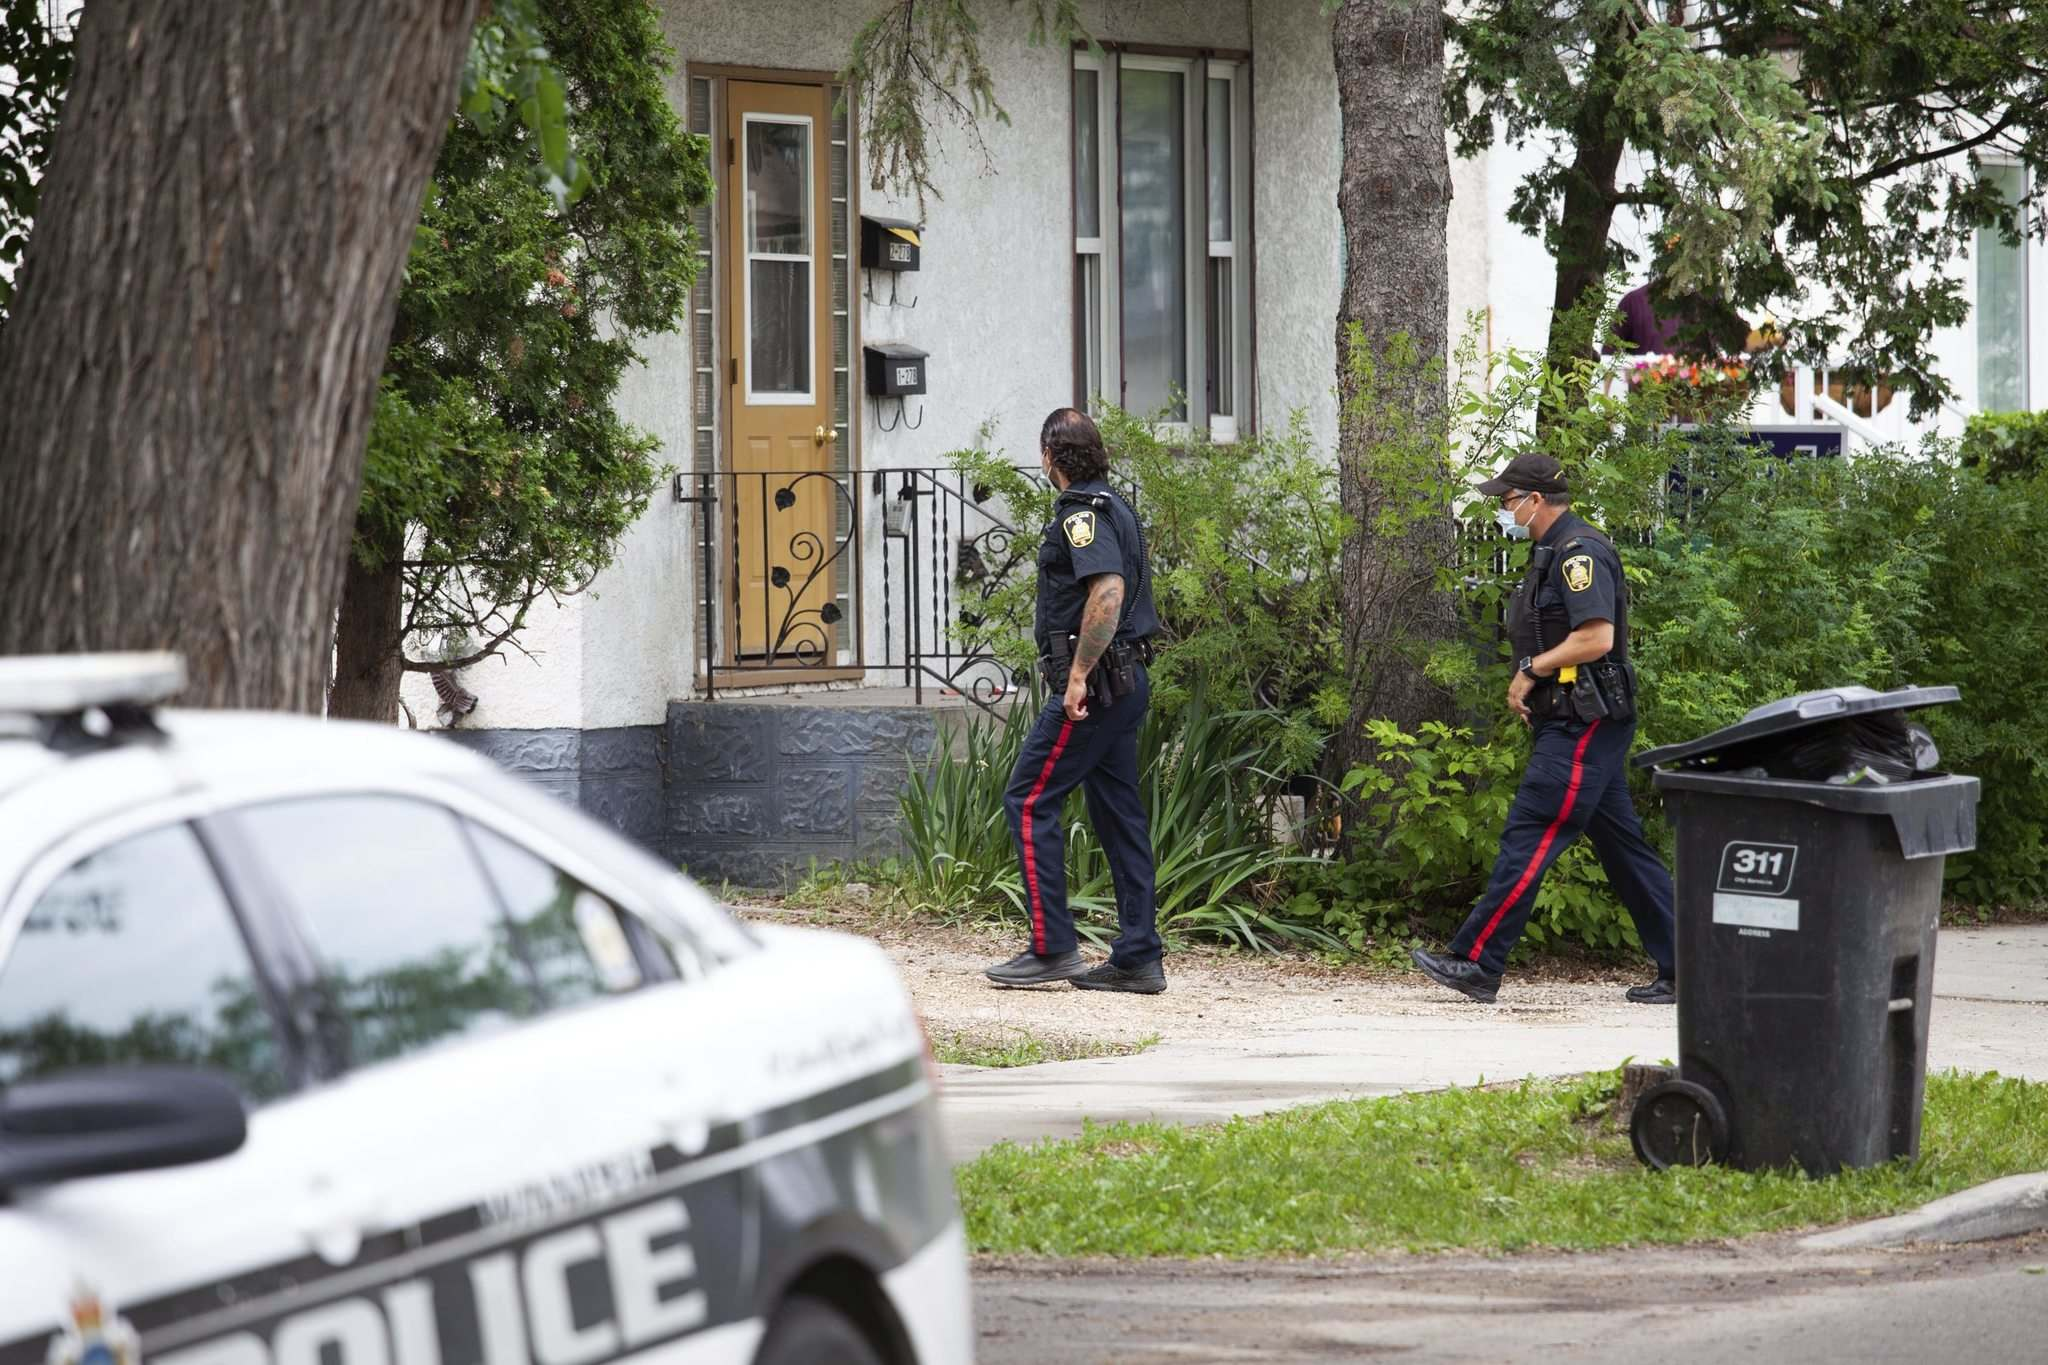 Police officers canvas the 200 block of Burrows Avenue after a 12-year-old youth was fatally stabbed Friday evening. (Daniel Crump / Winnipeg Free Press)</p>